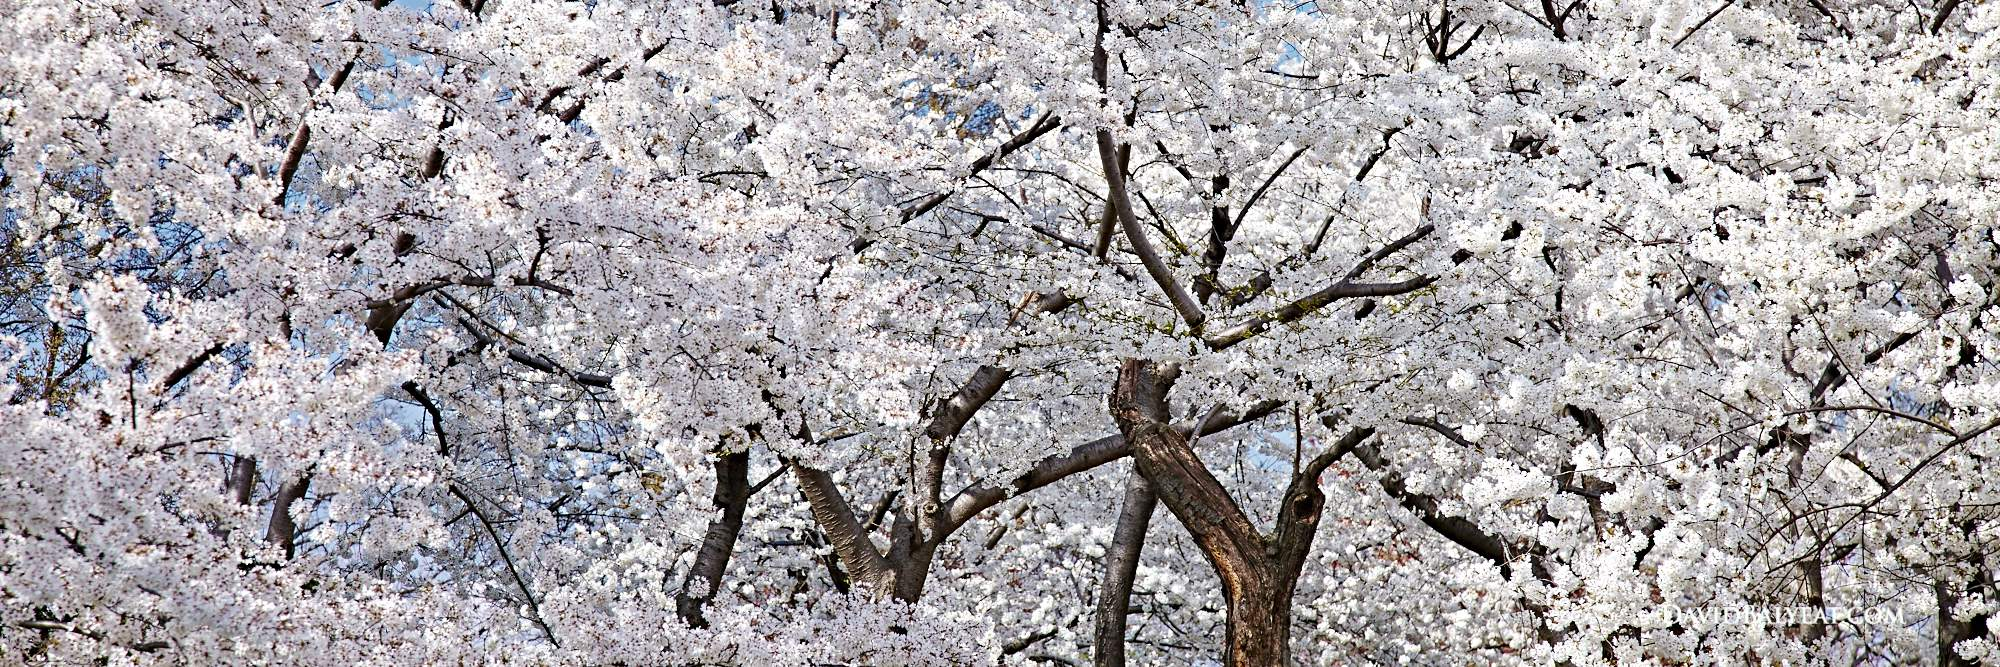 Washington D.C. cherry blossoms in full bloom in the spring high definition HD professional photography